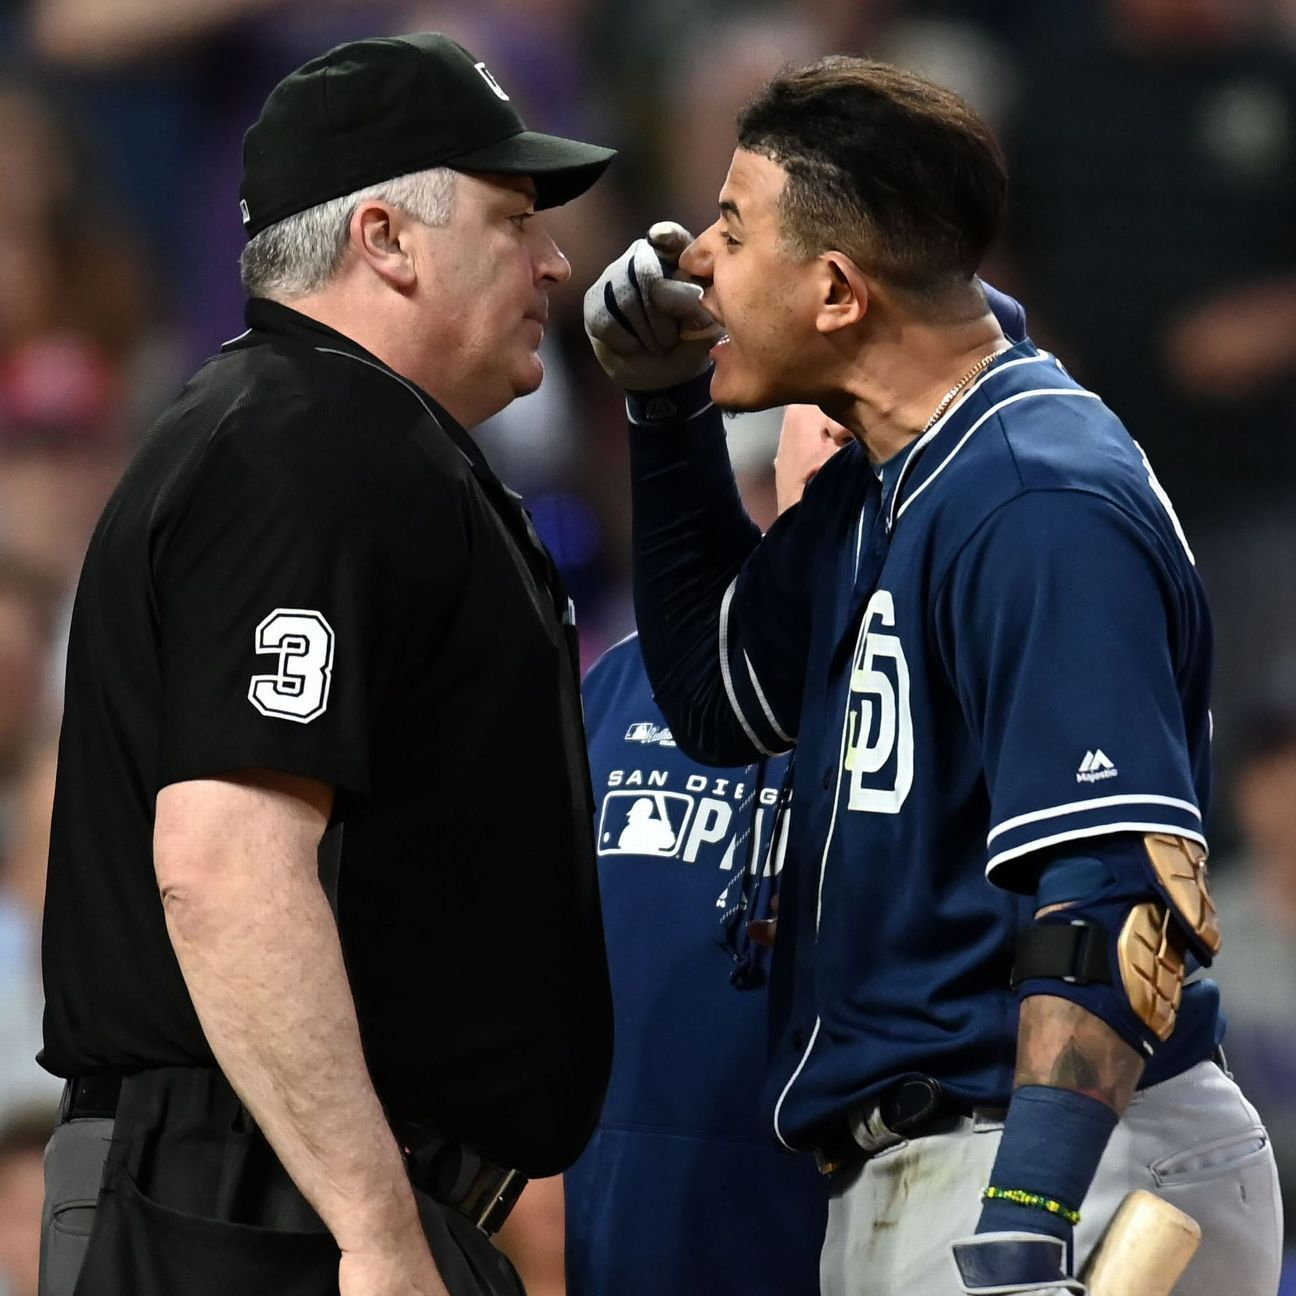 Machado suspended 1 game, fined after ejection